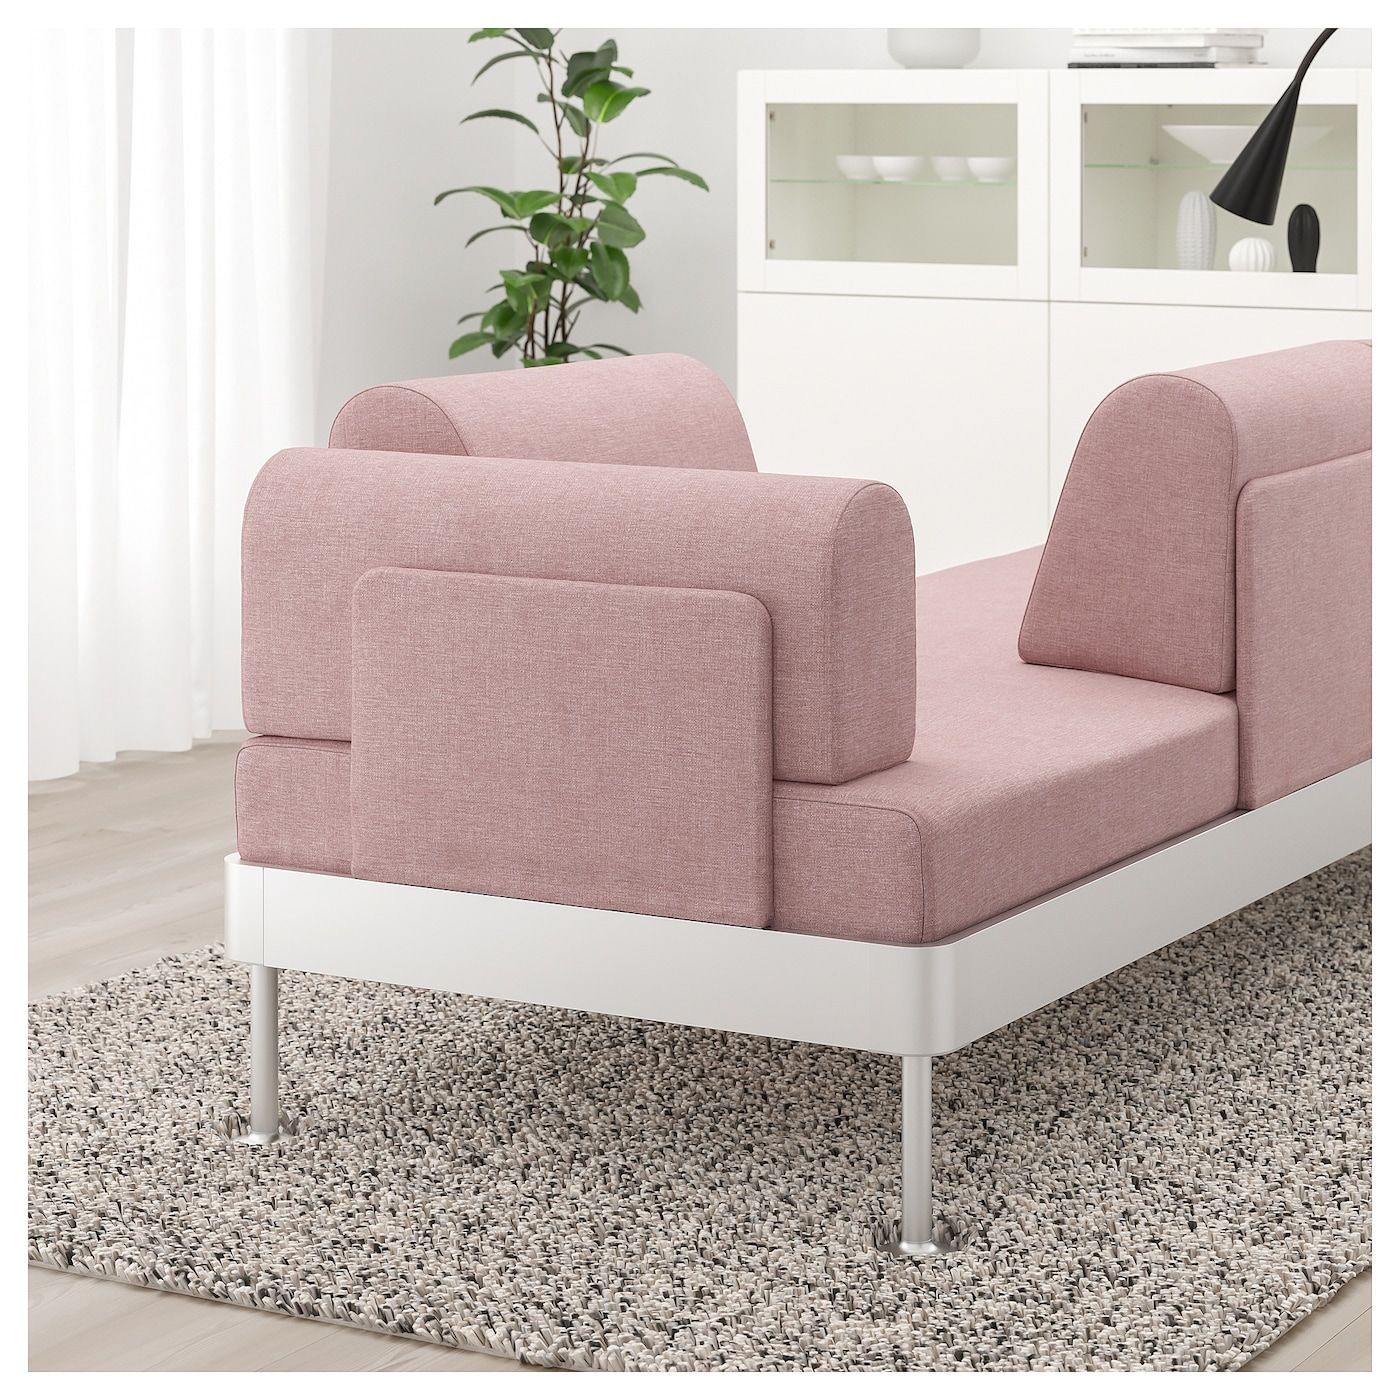 Delaktig Sofa With Side Table And Lamp Gunnared Light Brown Pink Ikea Cushions On Sofa Sofa Seat Cushions Ikea